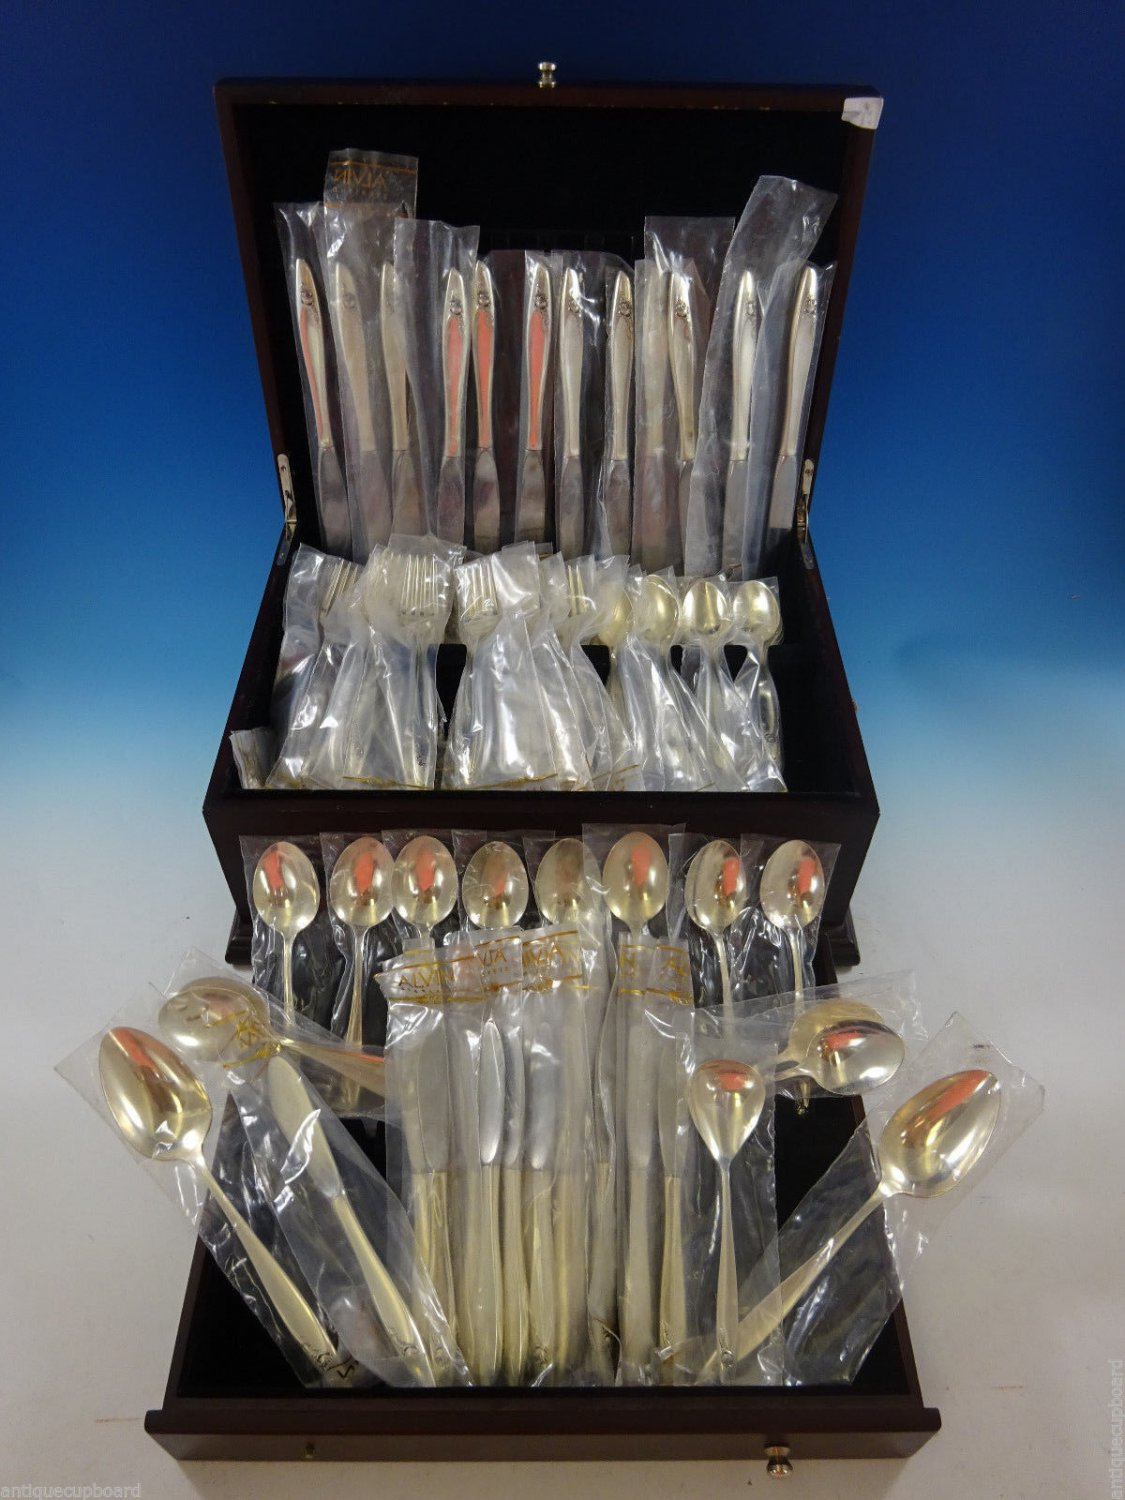 Eternal Rose by Alvin Sterling Silver Flatware Set For 12 Service 76 Pieces New